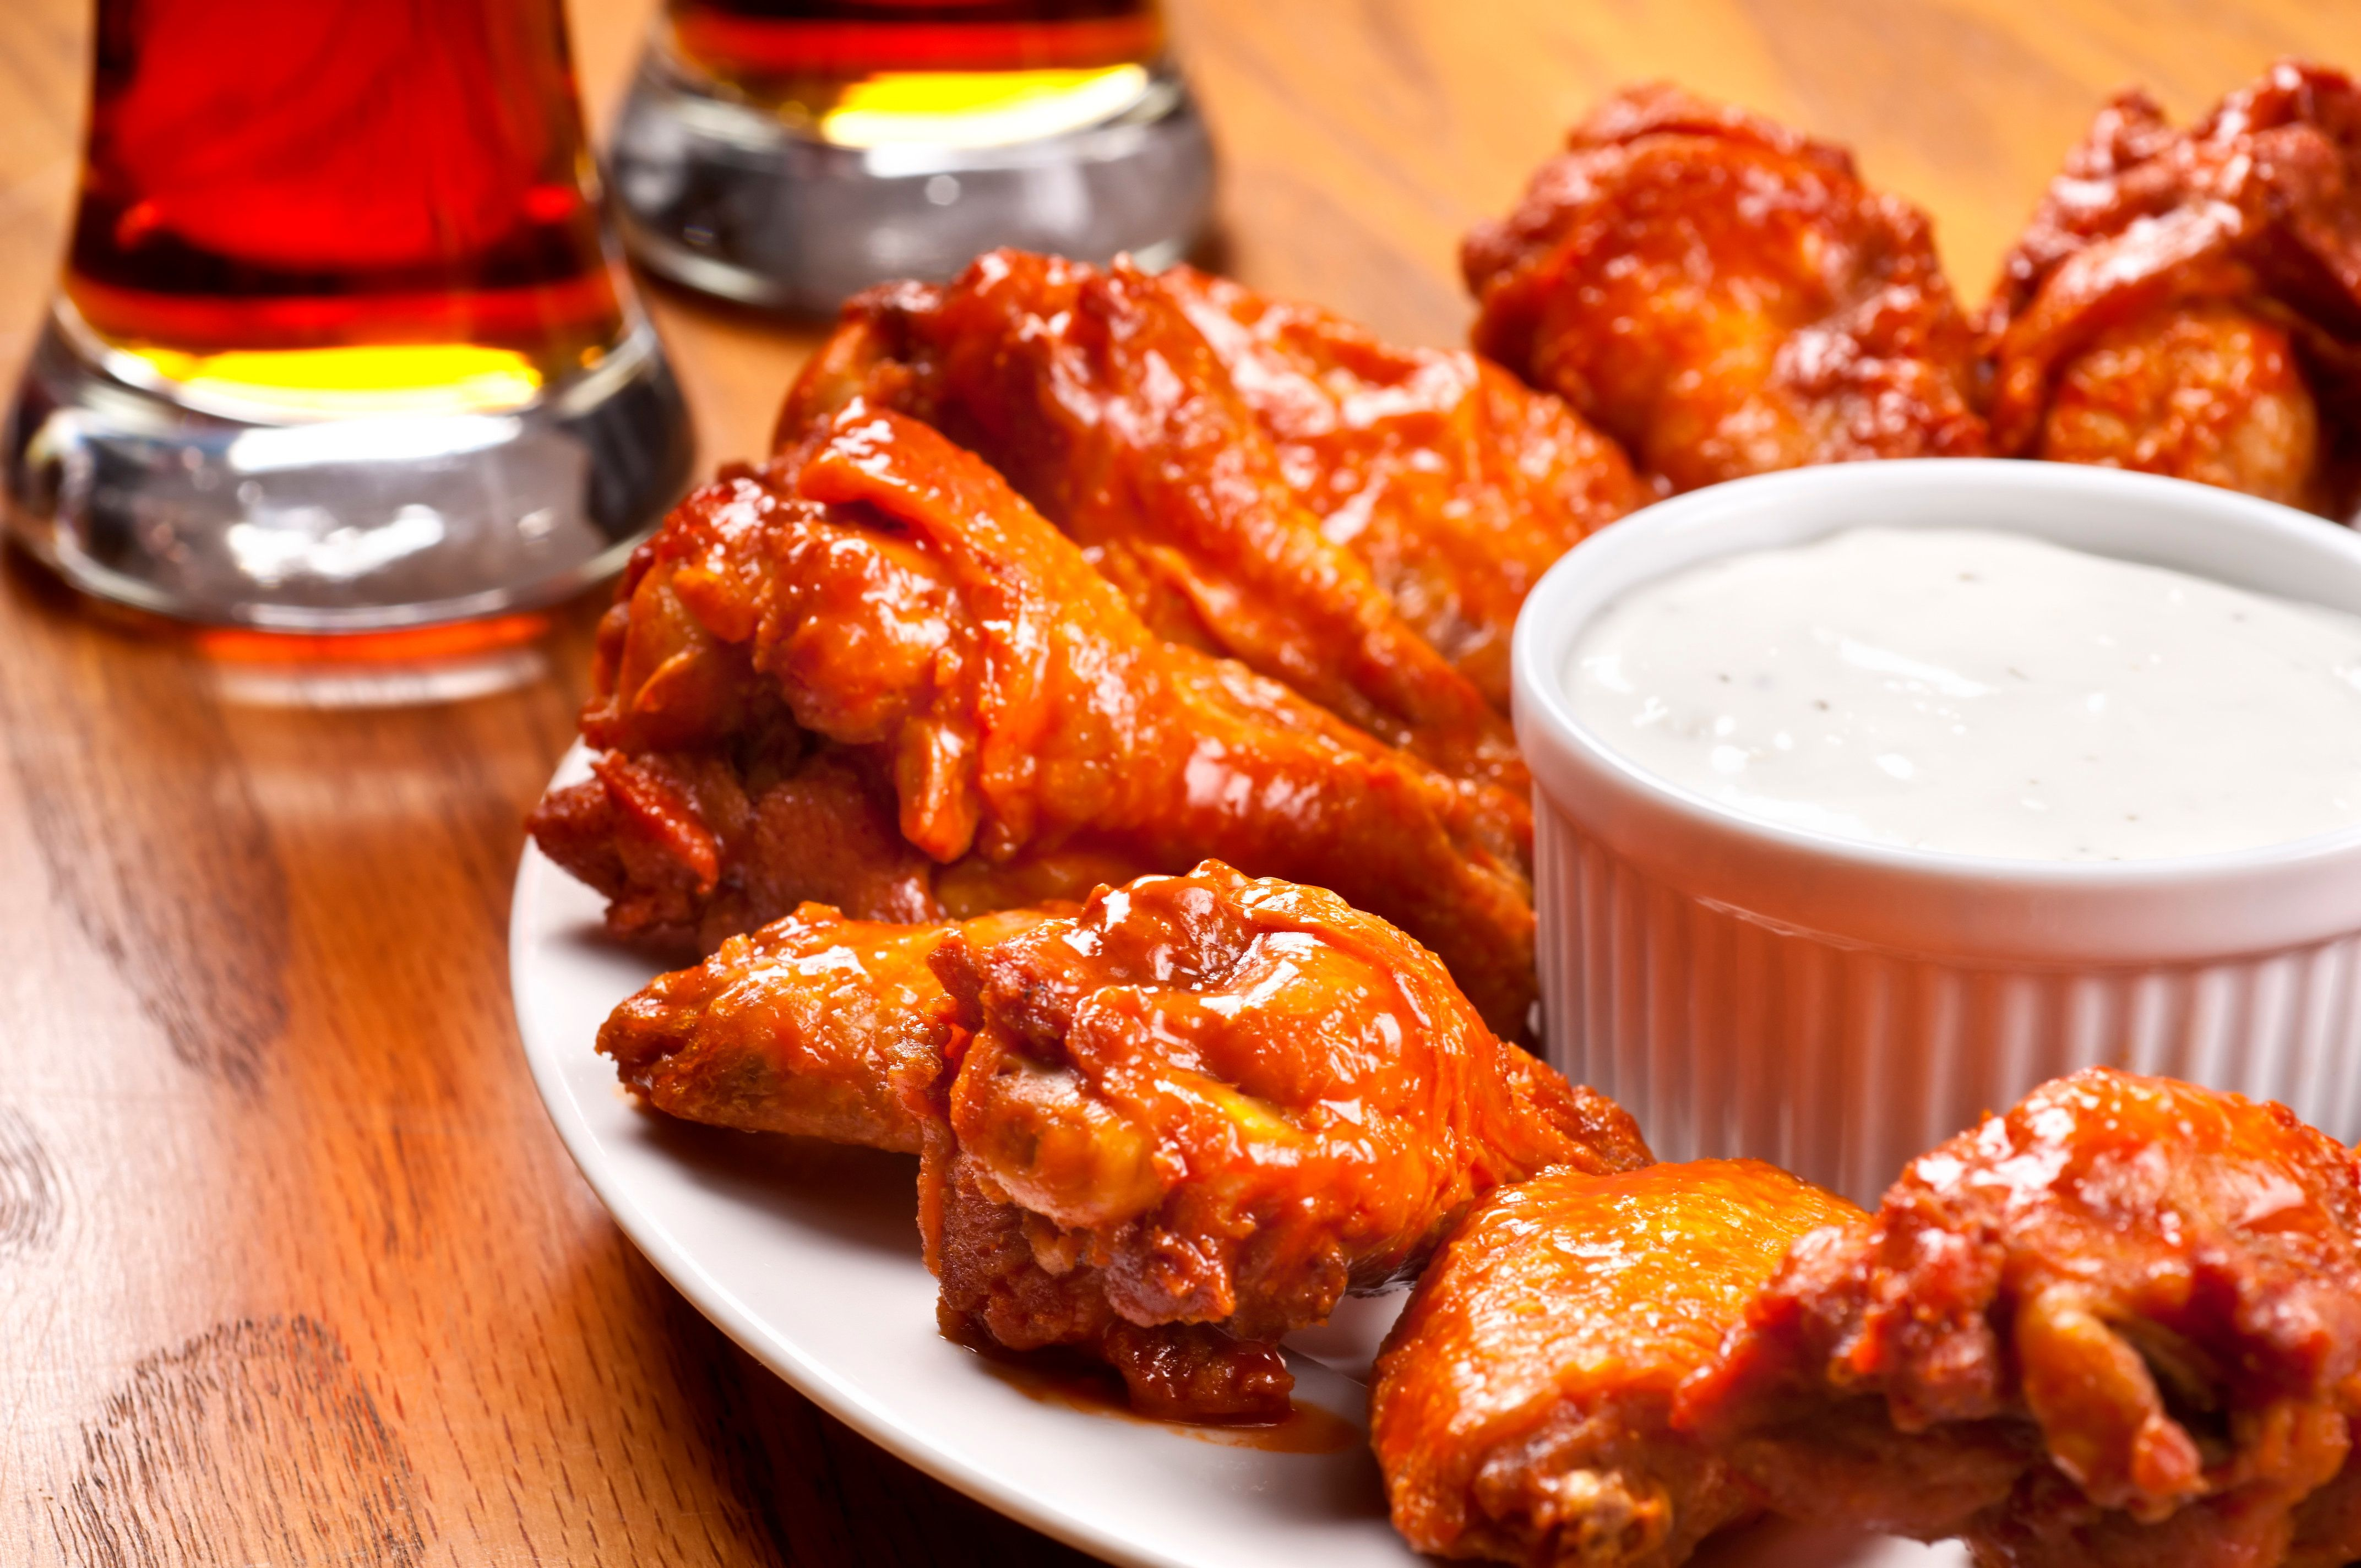 Your Drunken Urge For Pizza And Wings, Explained By